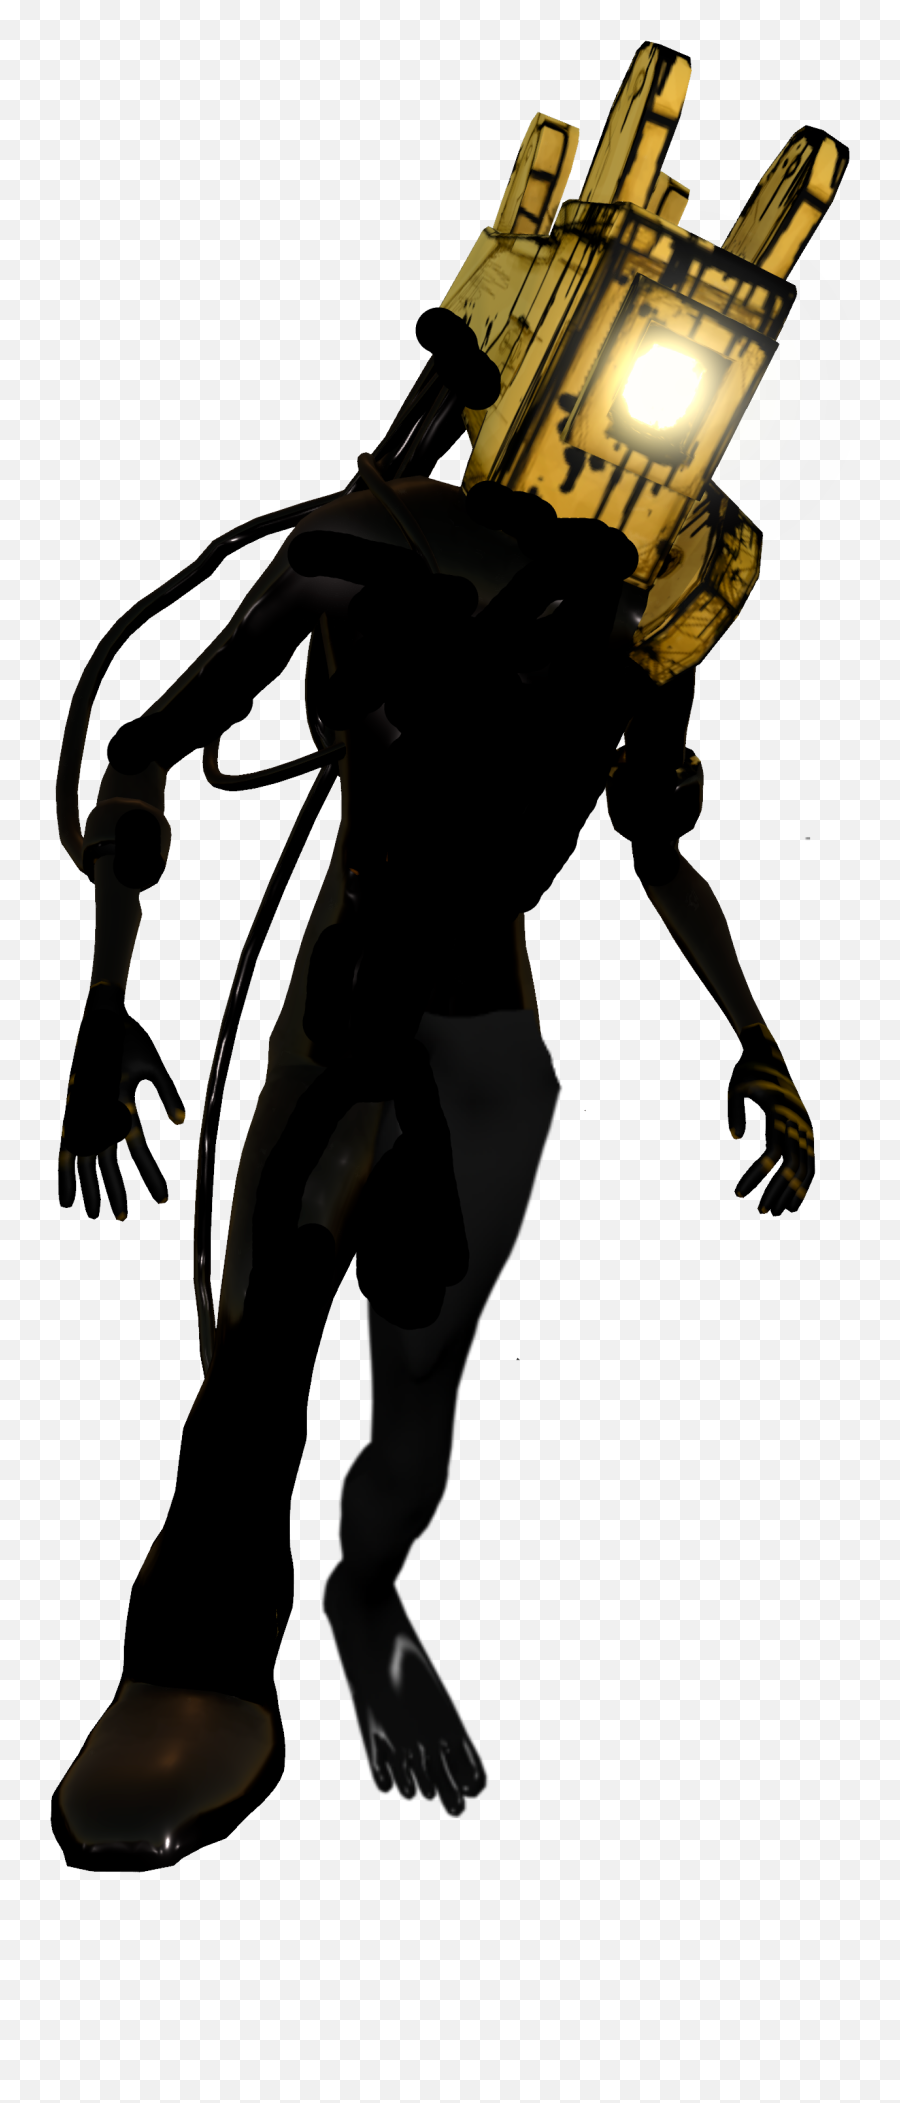 Alphaprototype - Bendy And The Ink Machine Projectionist  Bendy And The Ink Machine Personajes Emoji